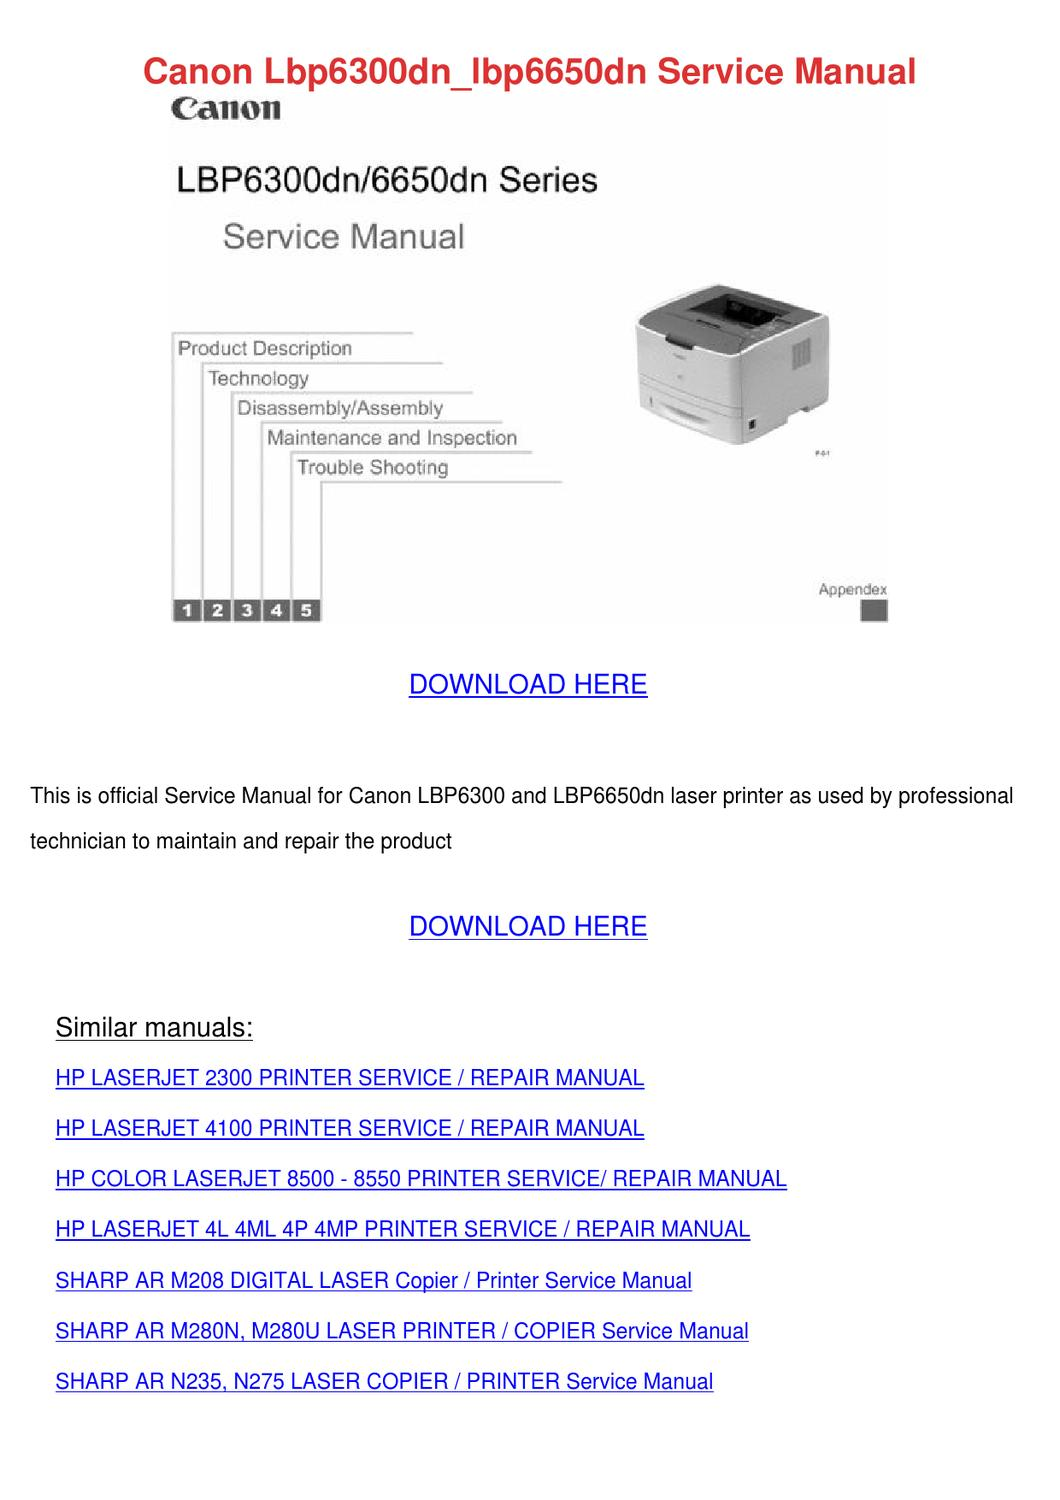 Canon Lbp6300dnlbp6650dn Service Manual By Kattie Macedonio Issuu